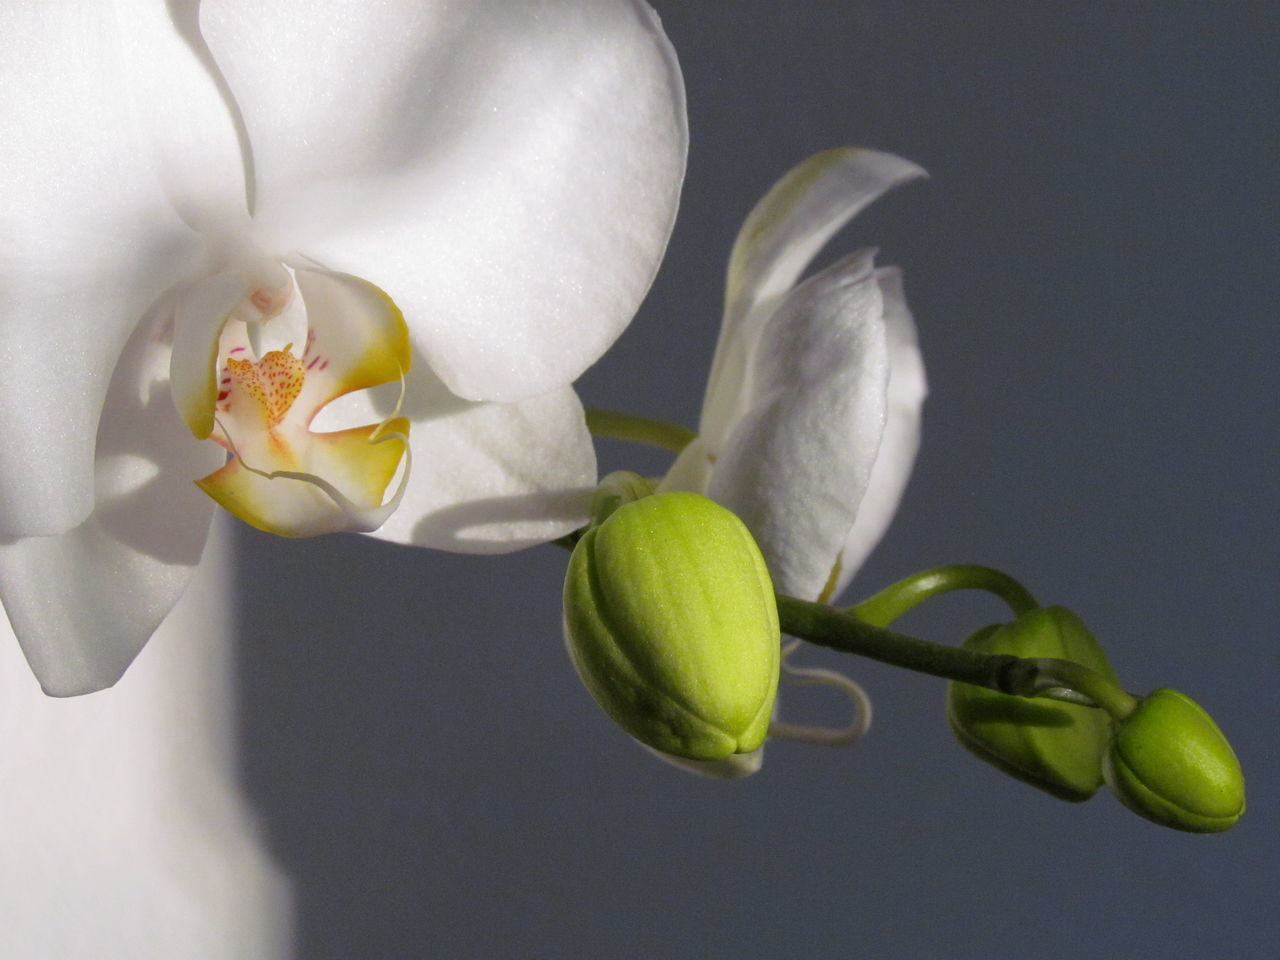 Flower Close-up Nature Freshness Beauty In Nature Growth Yellow Fragility No People Day Outdoors Flower Head Photography Orchids Orchid EyeEm Gallery Phalaenopsis Brazil Petal Orchids Collection Eyeemphotography EyeEm Gallery Nature_collection Kikosene Indoors  EyeEm